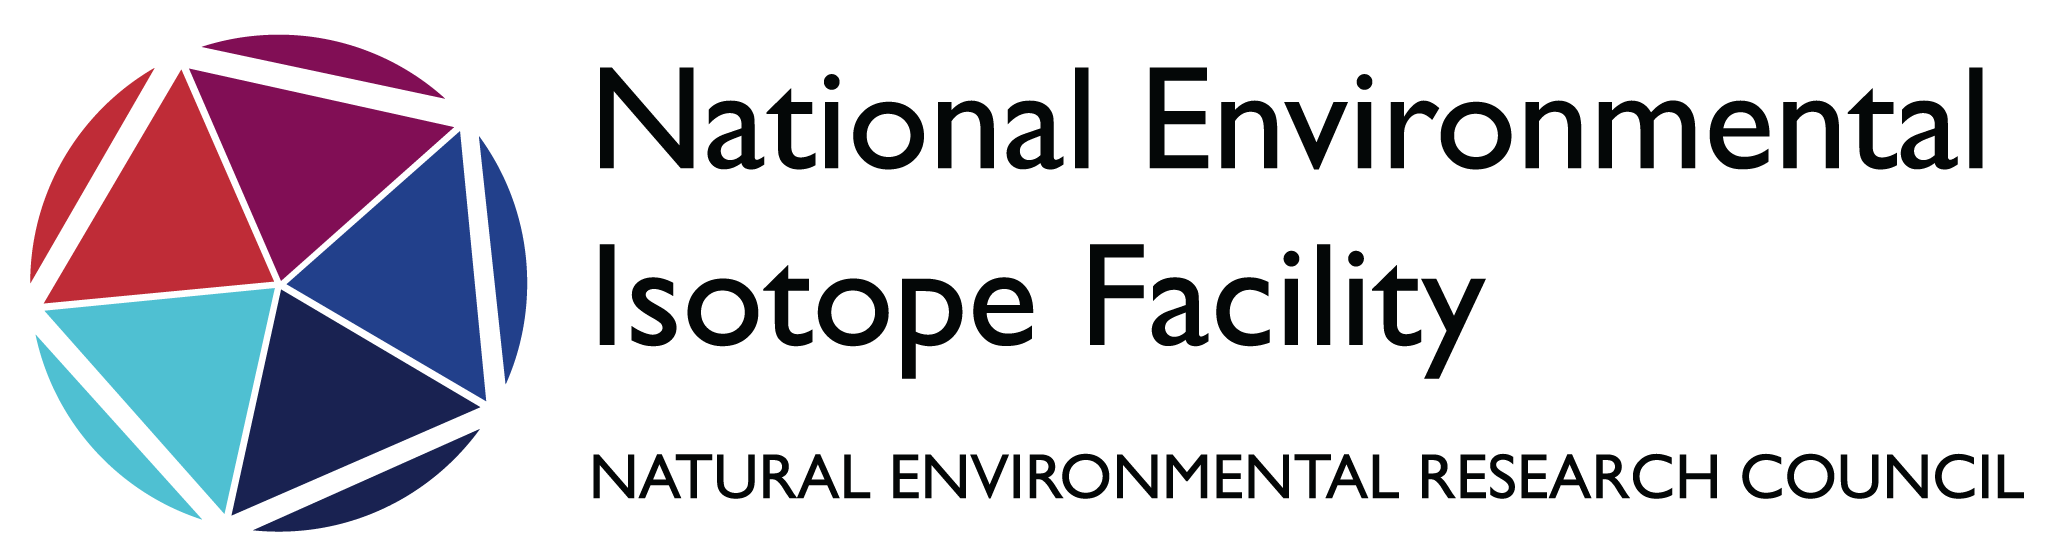 The National Environmental Isotope Facility provides world–leading integrated analytical capability to support the UK NERC science communities. The facility provides: (i) unparalleled analytical capacity and data quality to serve internationally competitive research projects and programmes, (ii) a diverse range of specialist expertise and instrumentation, not available locally in most HEIs, (iii) a national platform for innovation that supports training etc